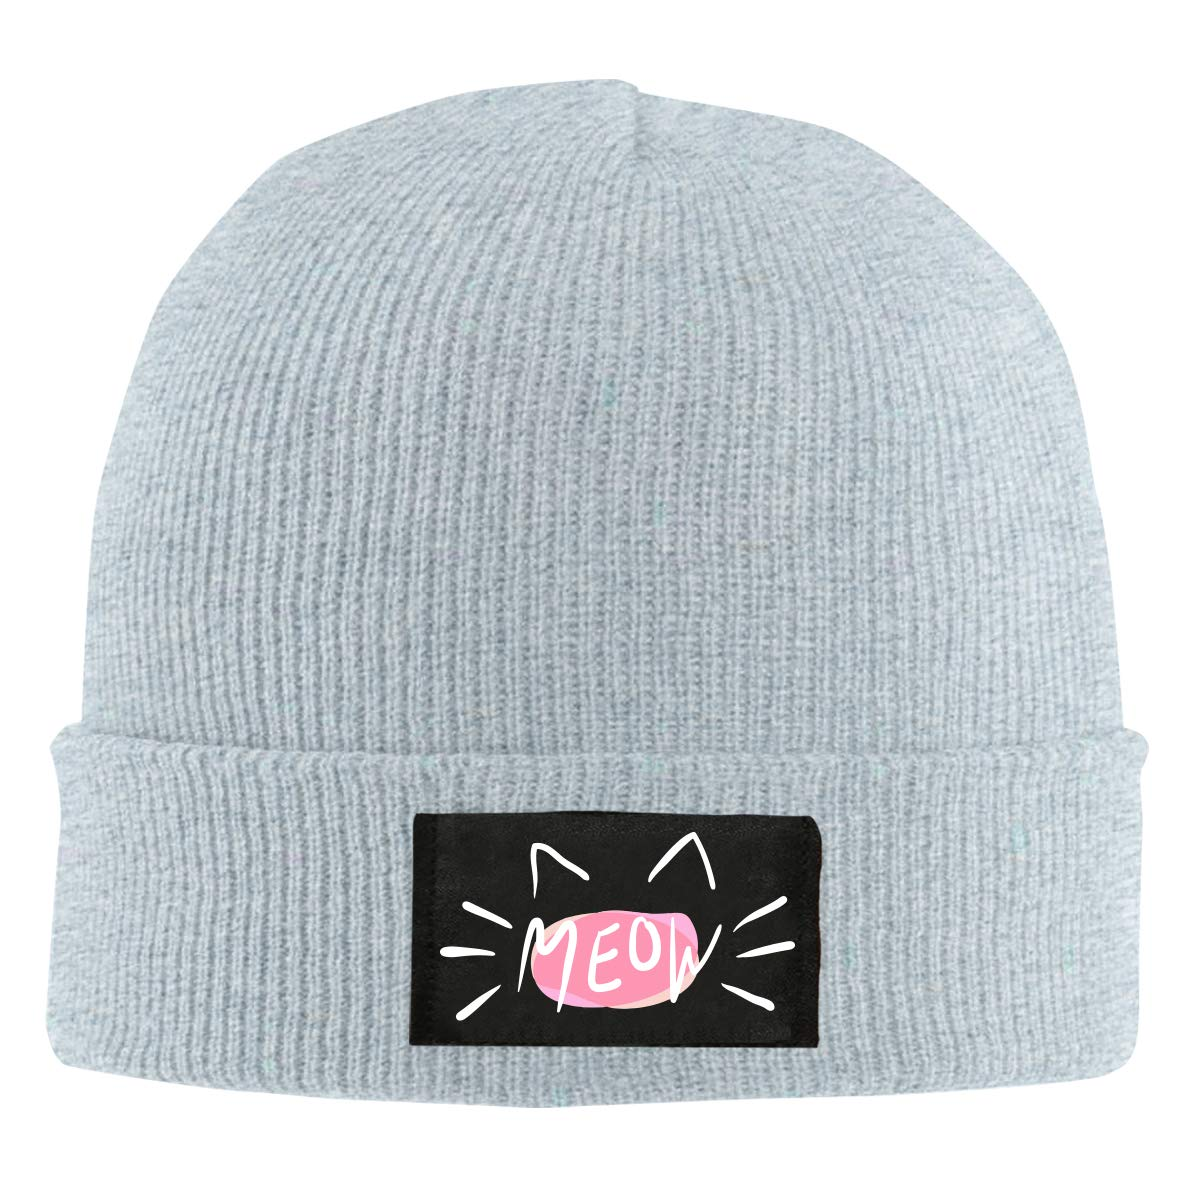 100/% Acrylic Comfortable Skiing Cap Mens and Womens Cat Meow-1 Knitting Hat